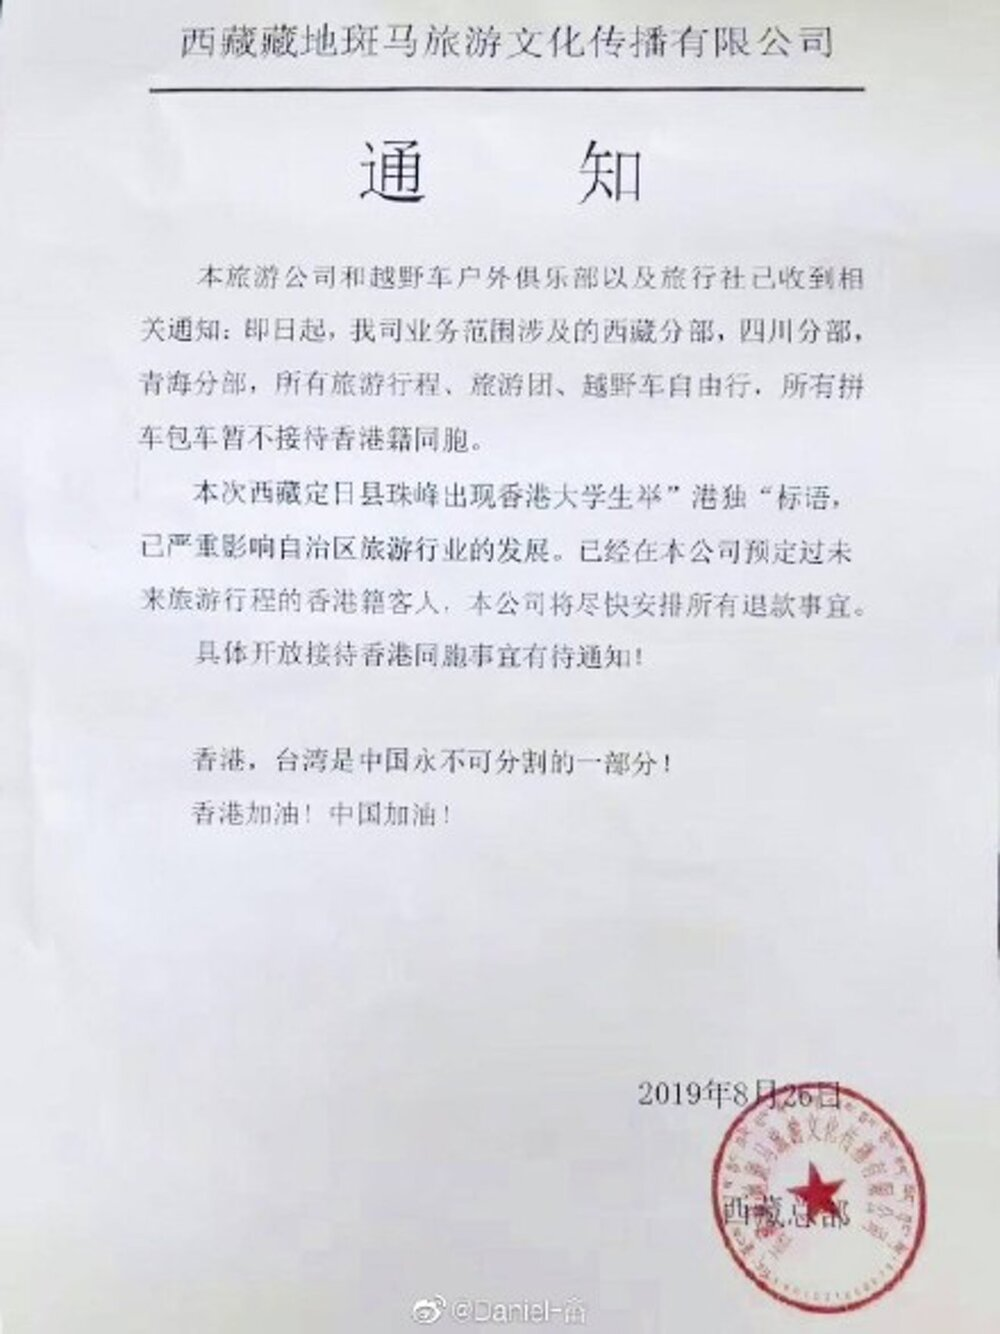 The notification, released in August by the state run Tibet Banma Tourism Culture Communication Company